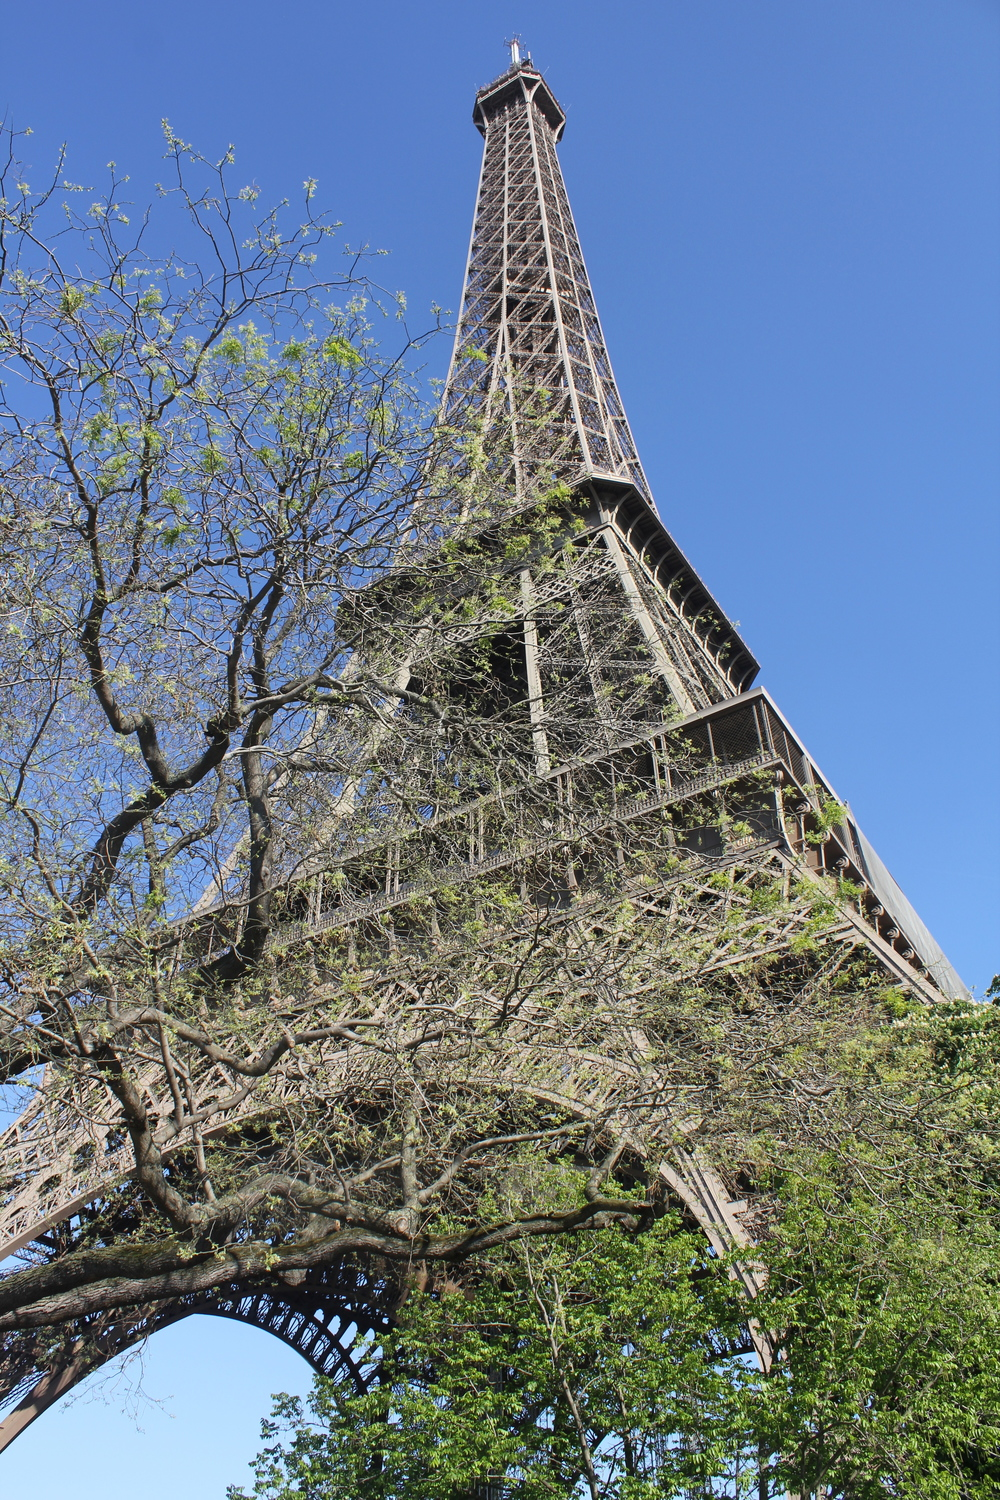 The Eiffel Tower of course